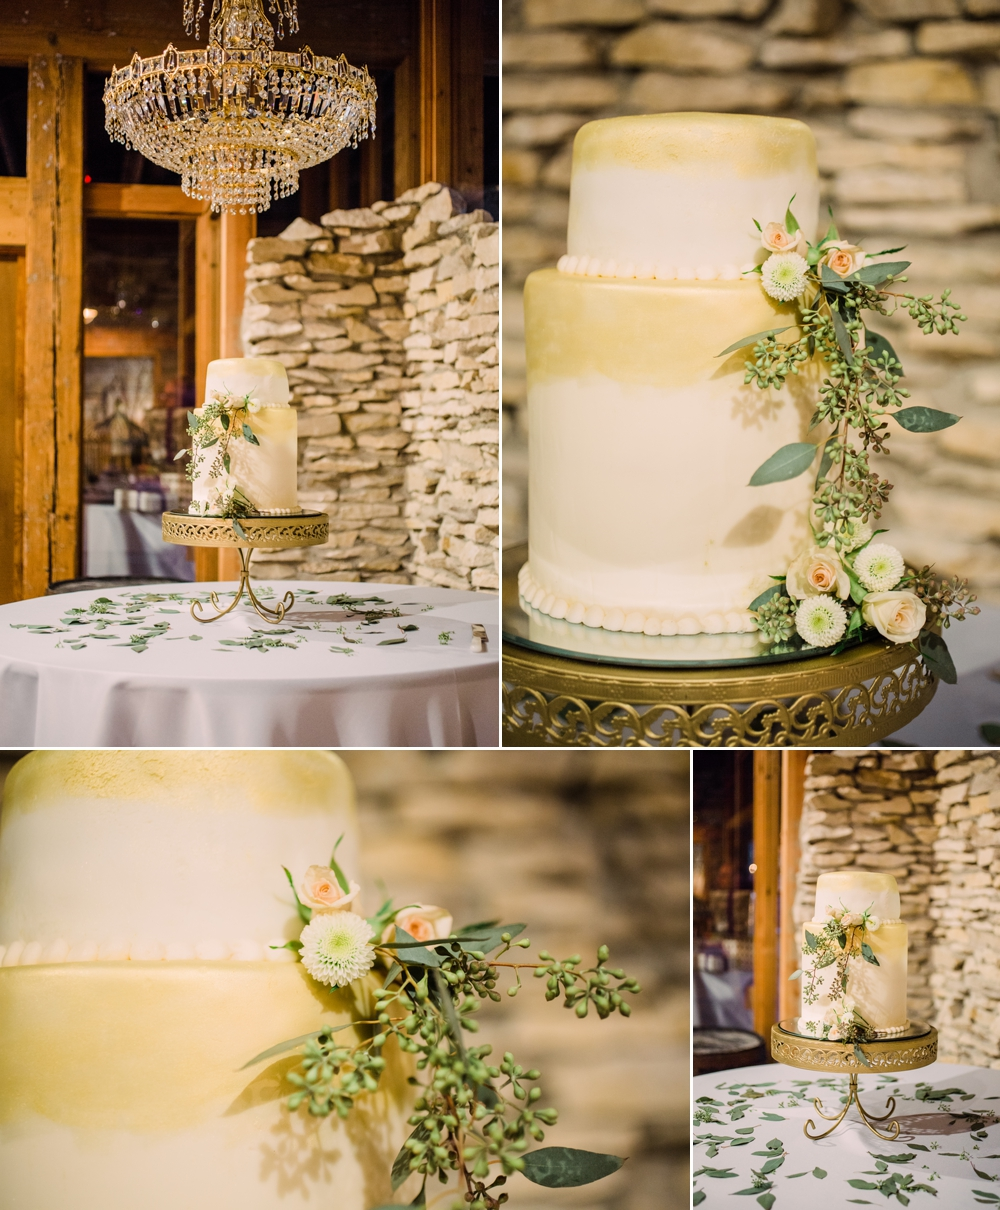 Wedding Photography_Rustix Restauarant and Reception_Humboldt Iowa_details of the cake_Iowa Wedding Photographer.jpg